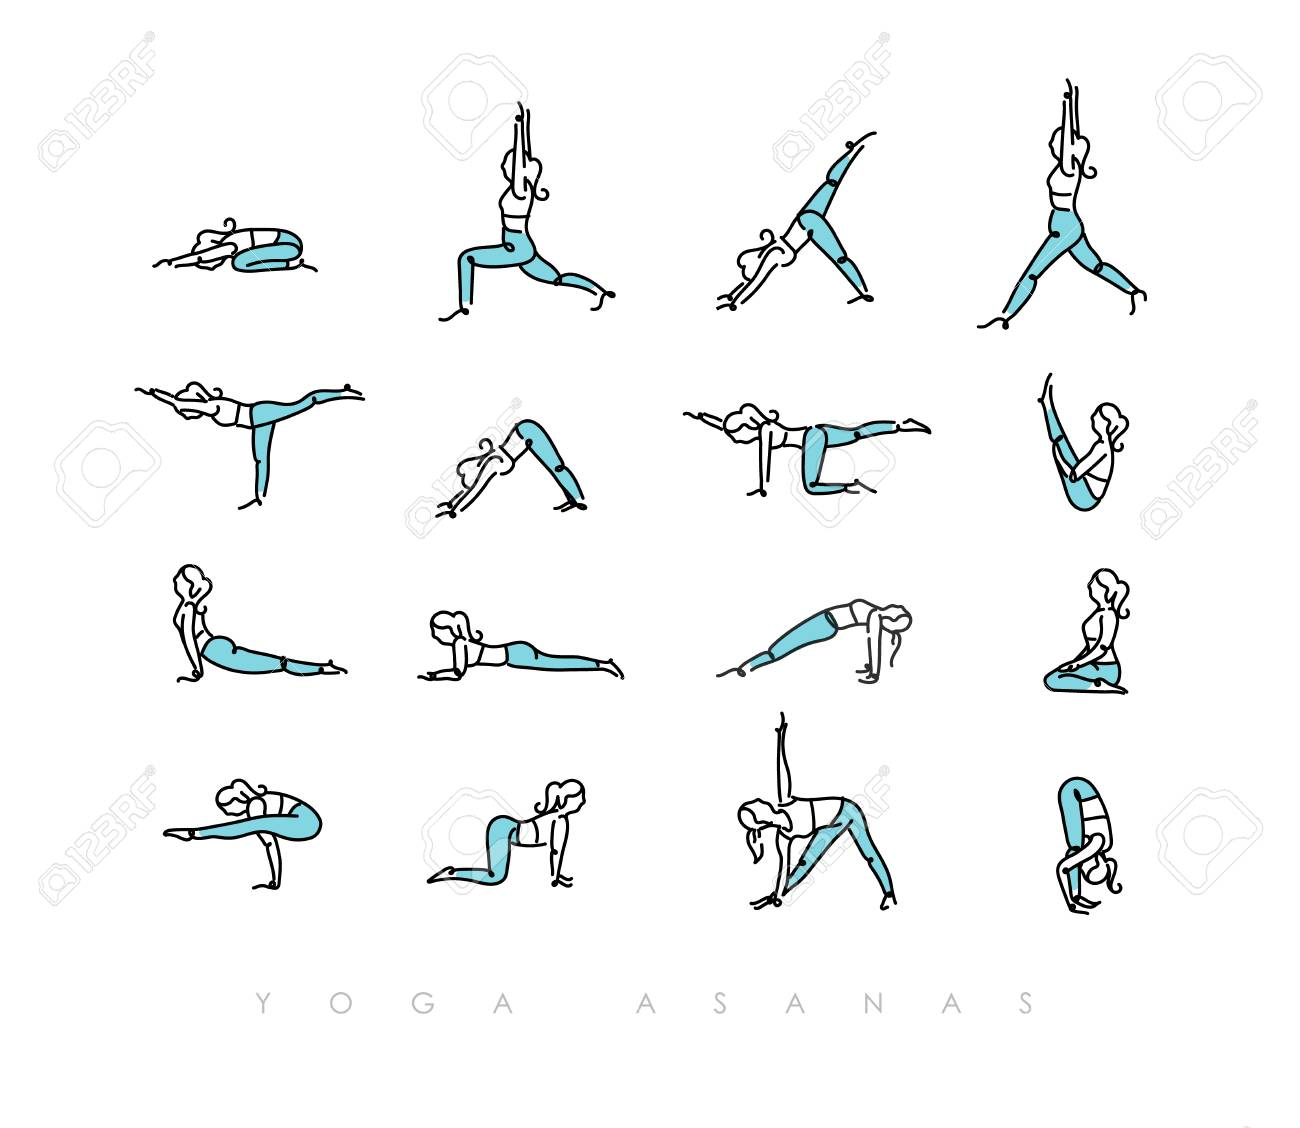 Pen Line Hand Drawing Girls In Yoga Asanas In Light Style Drawing Royalty Free Cliparts Vectors And Stock Illustration Image 125294243